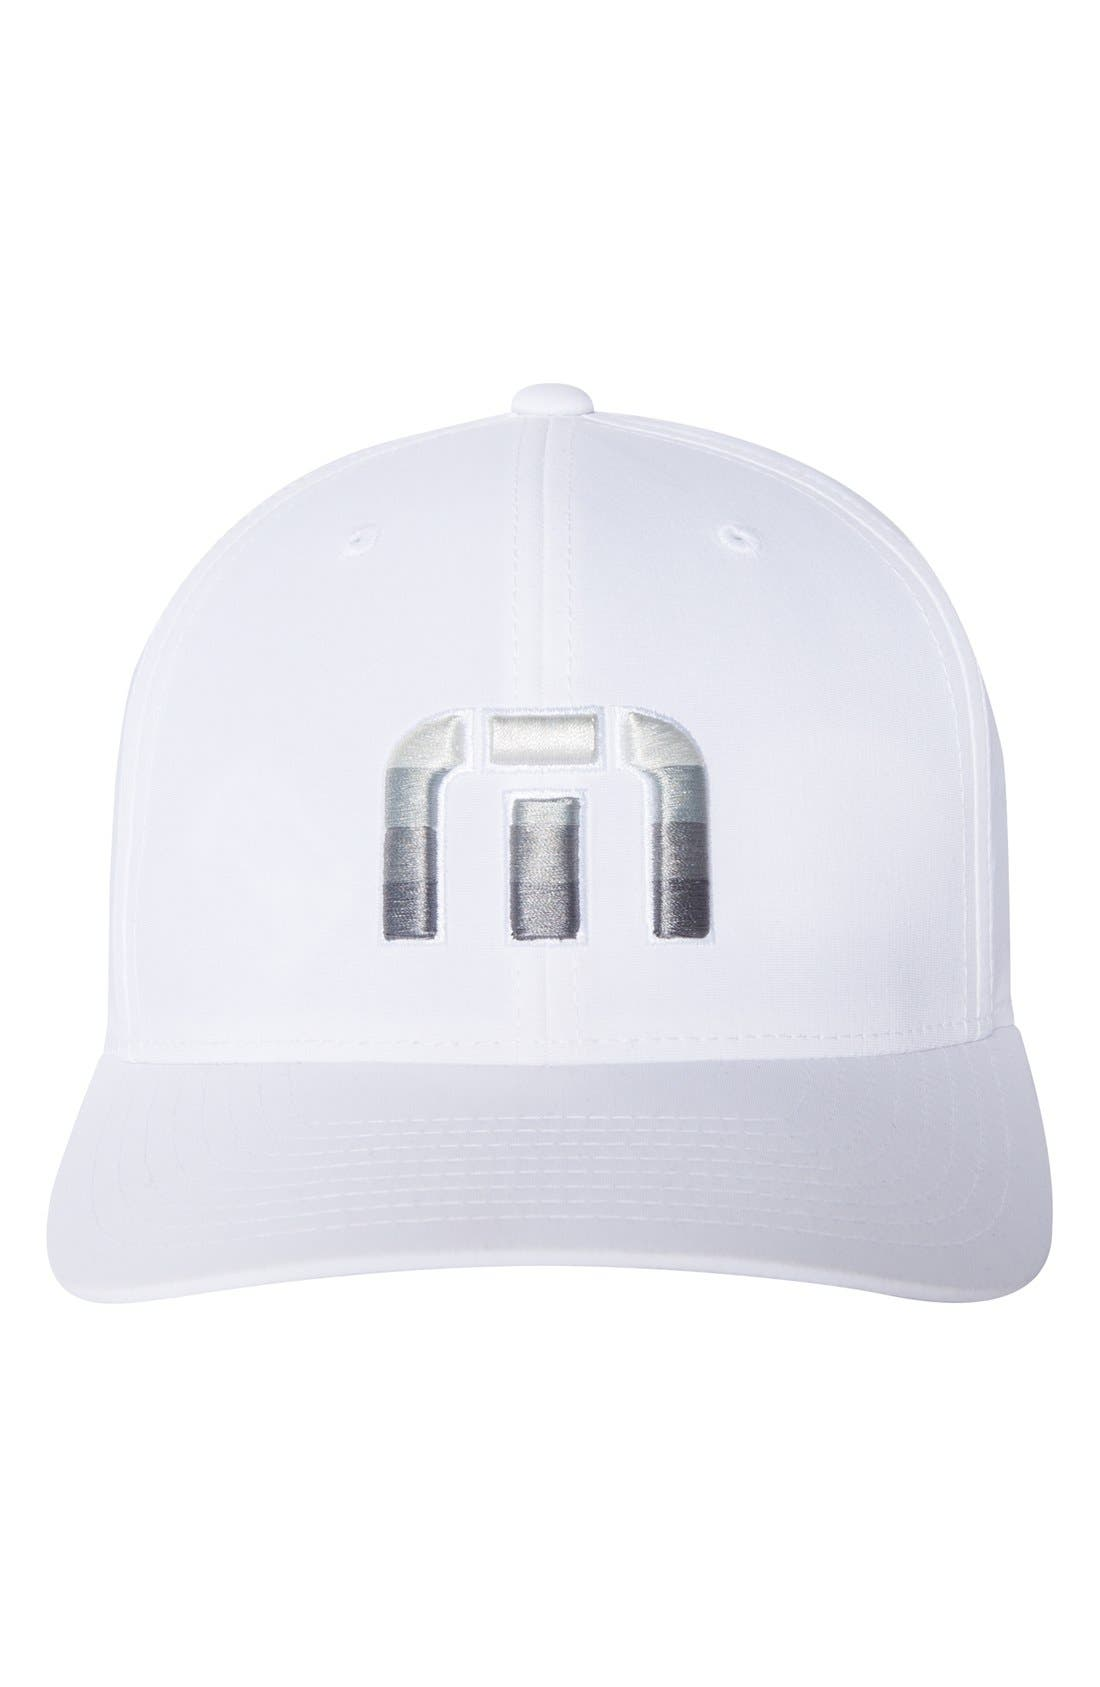 the best attitude ad345 3f81c reduced travis mathew donnelly flexfit hat nordstrom 36f56 ee42e